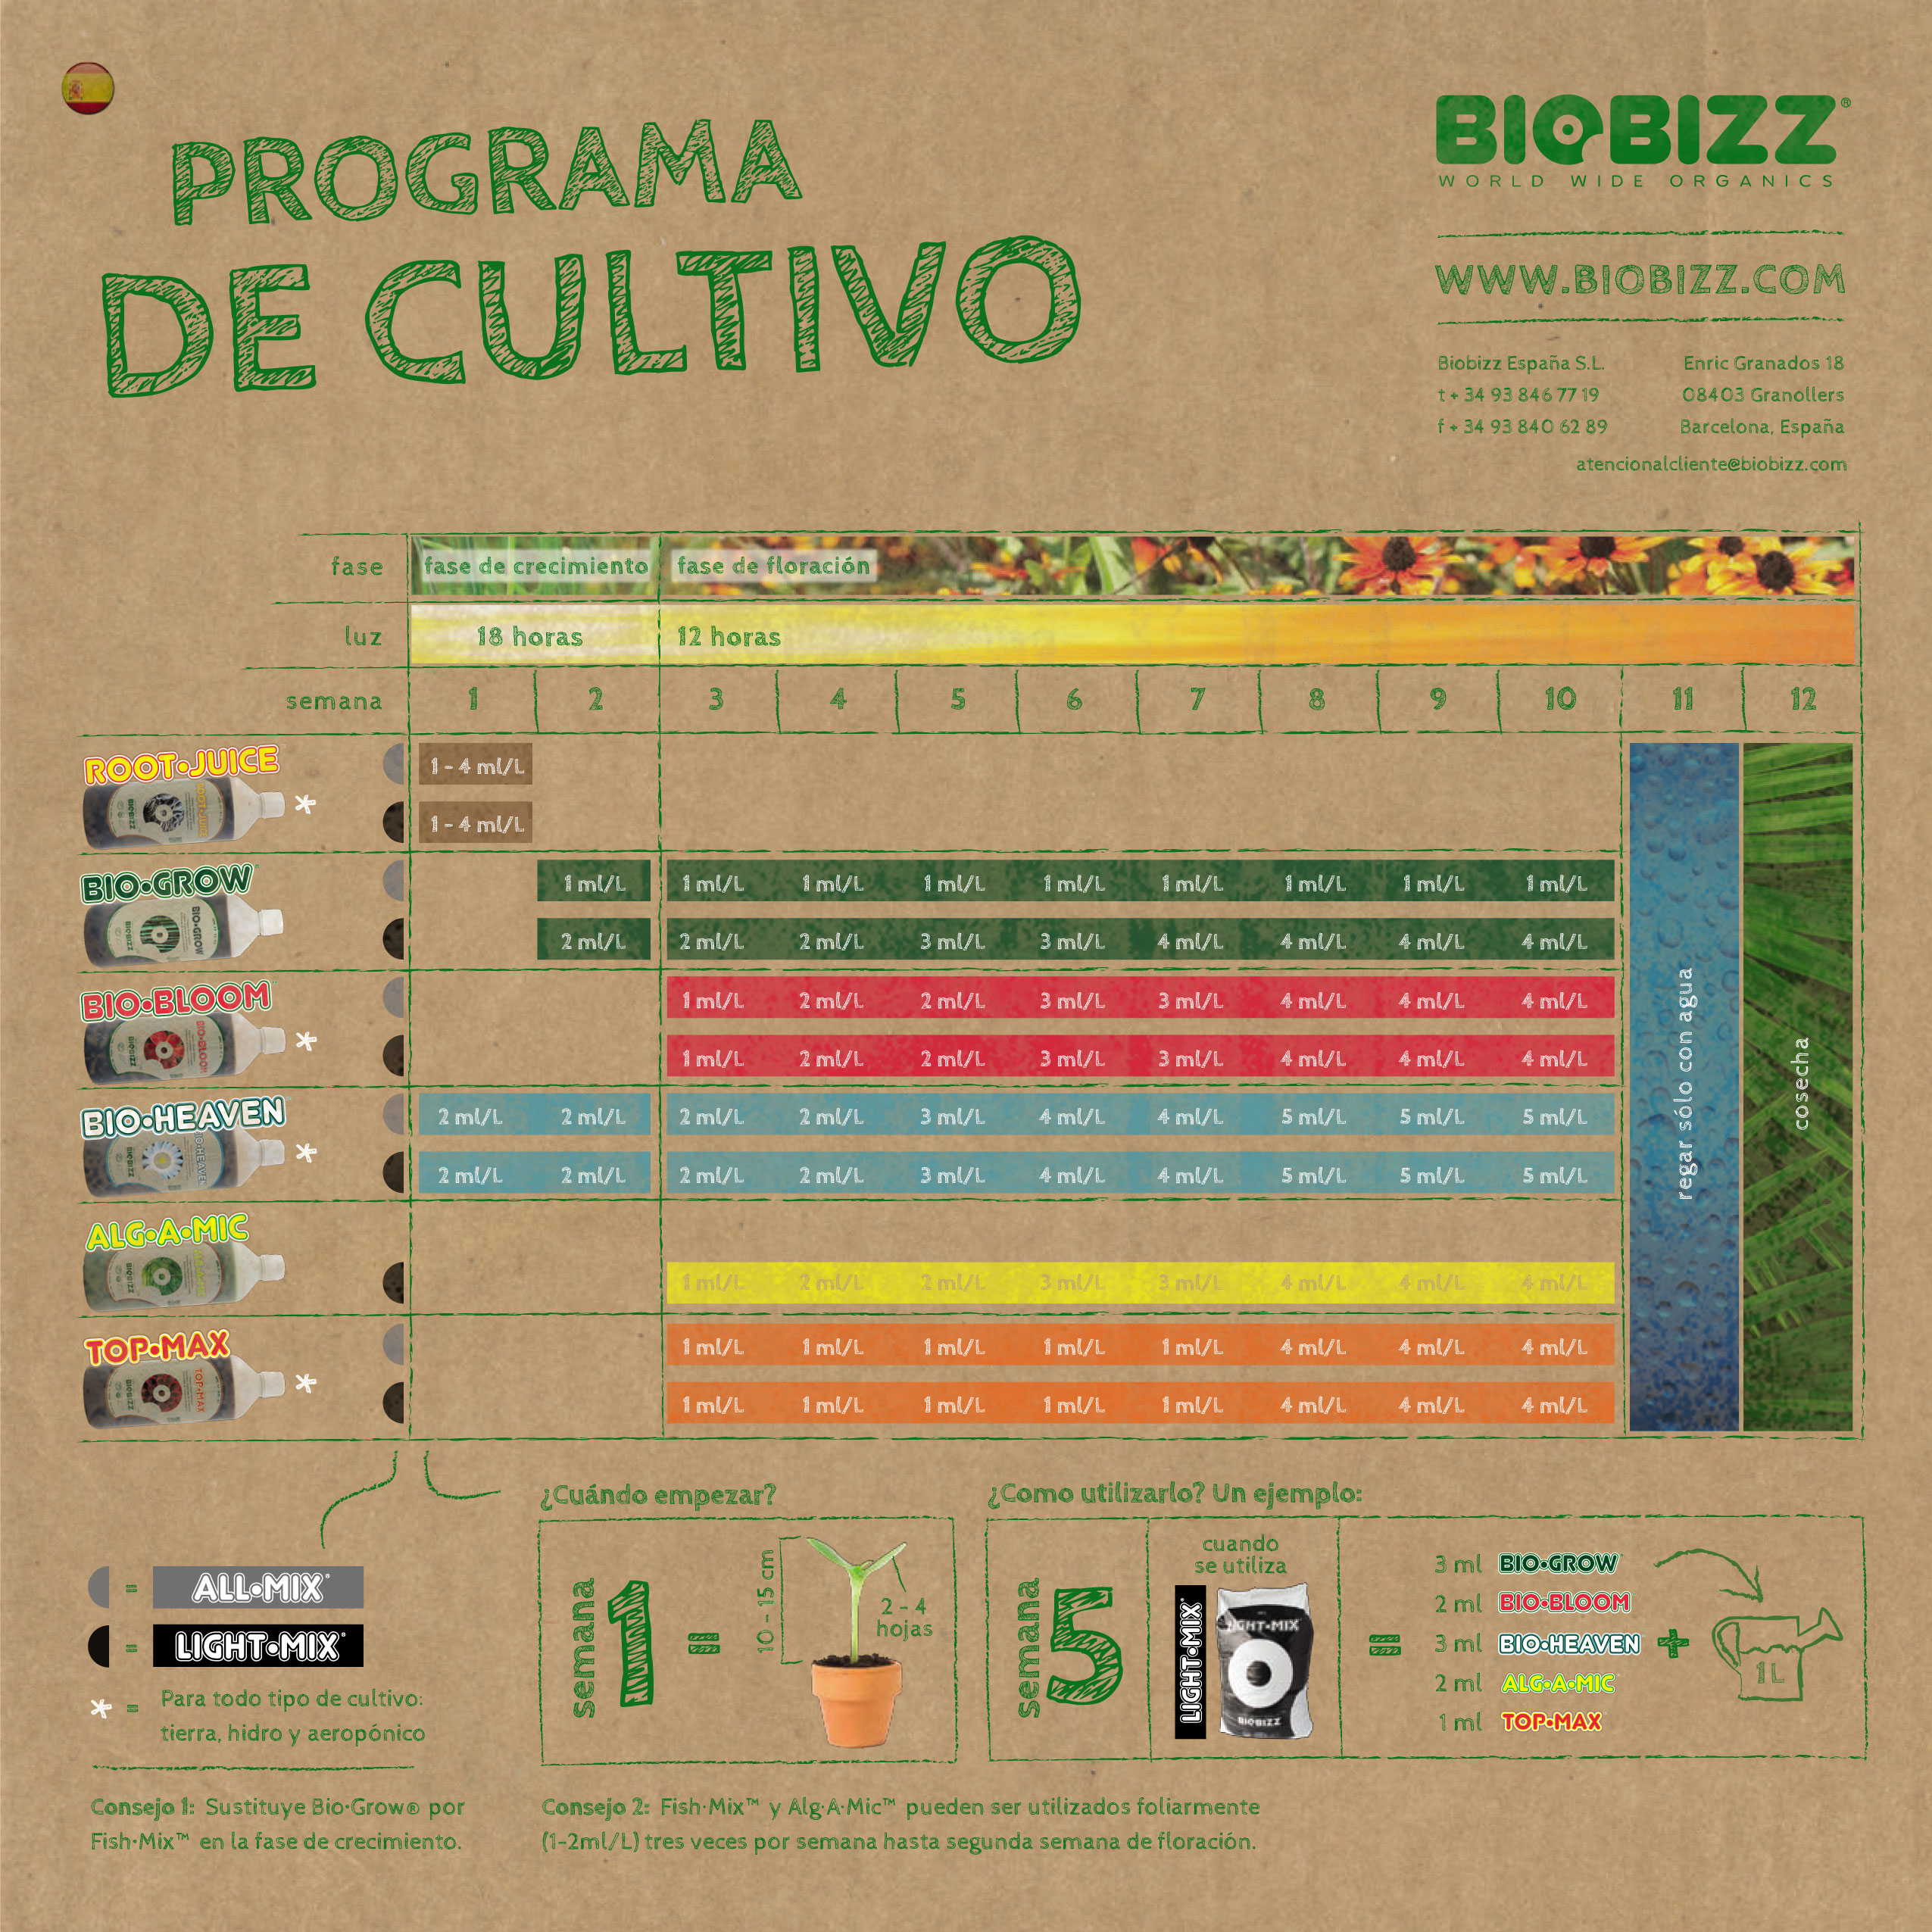 Tabla de riego fertilizantes Biobizz 2013